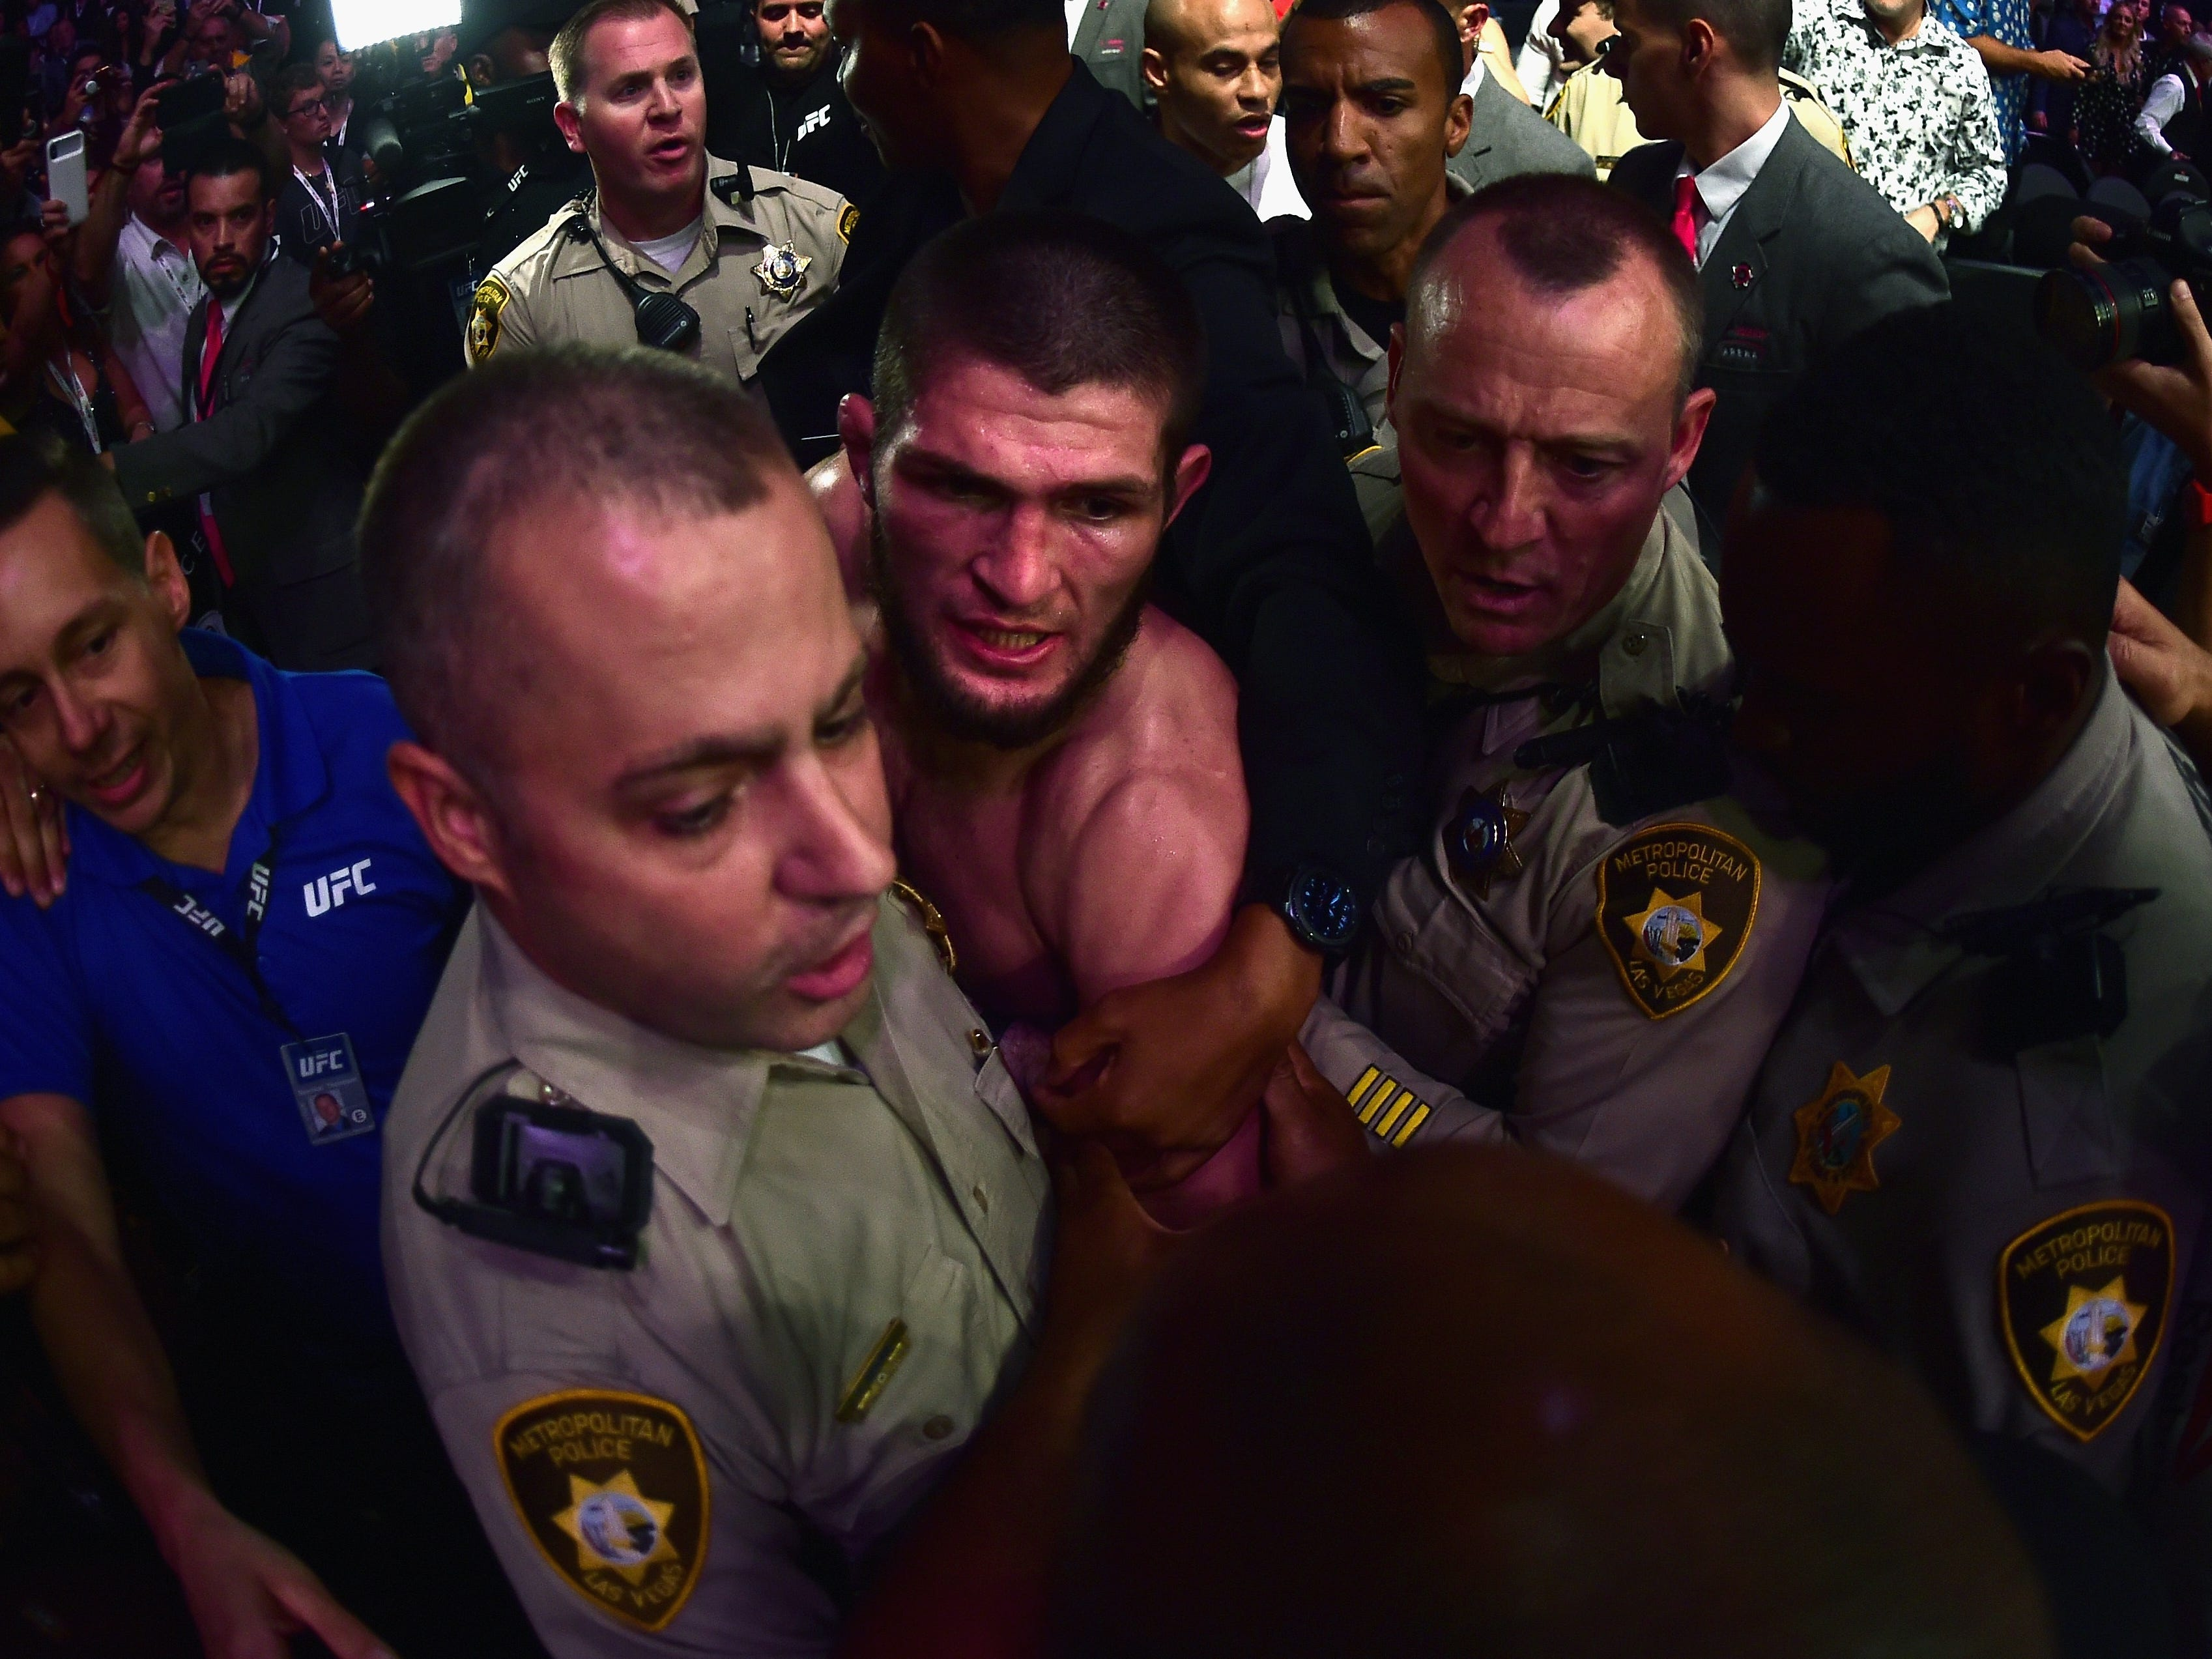 Khabib Nurmagomedov is escorted out of the arena by police and security after the chaotic post-fight scene.